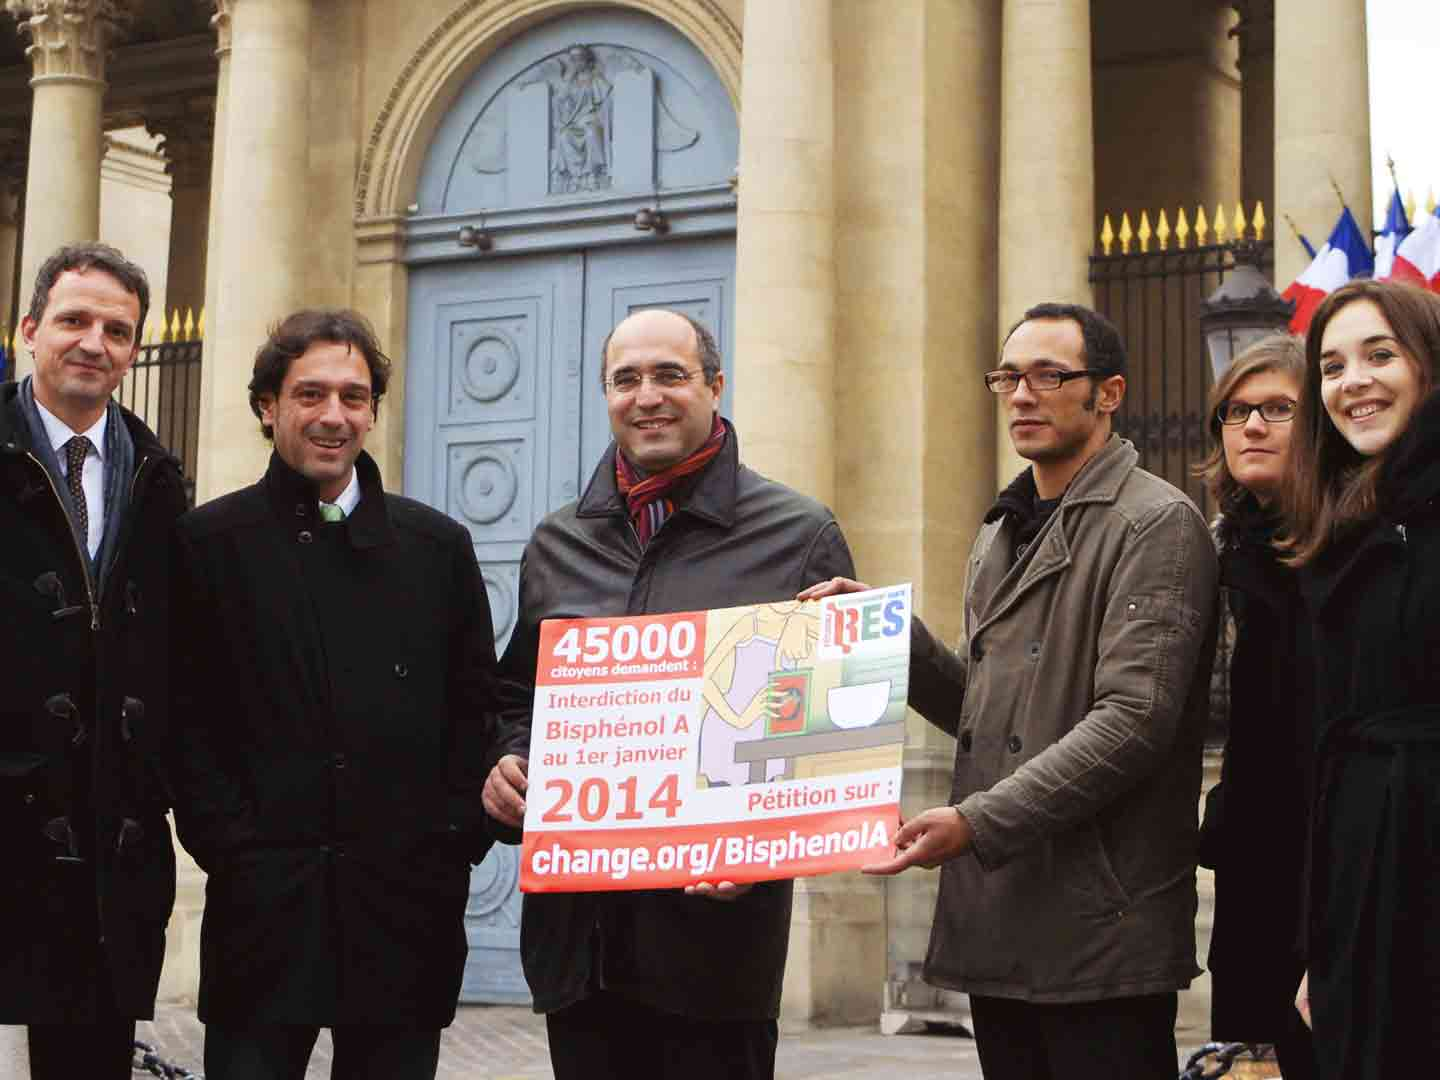 A group of supporters holding a sign in front of the French Senate.